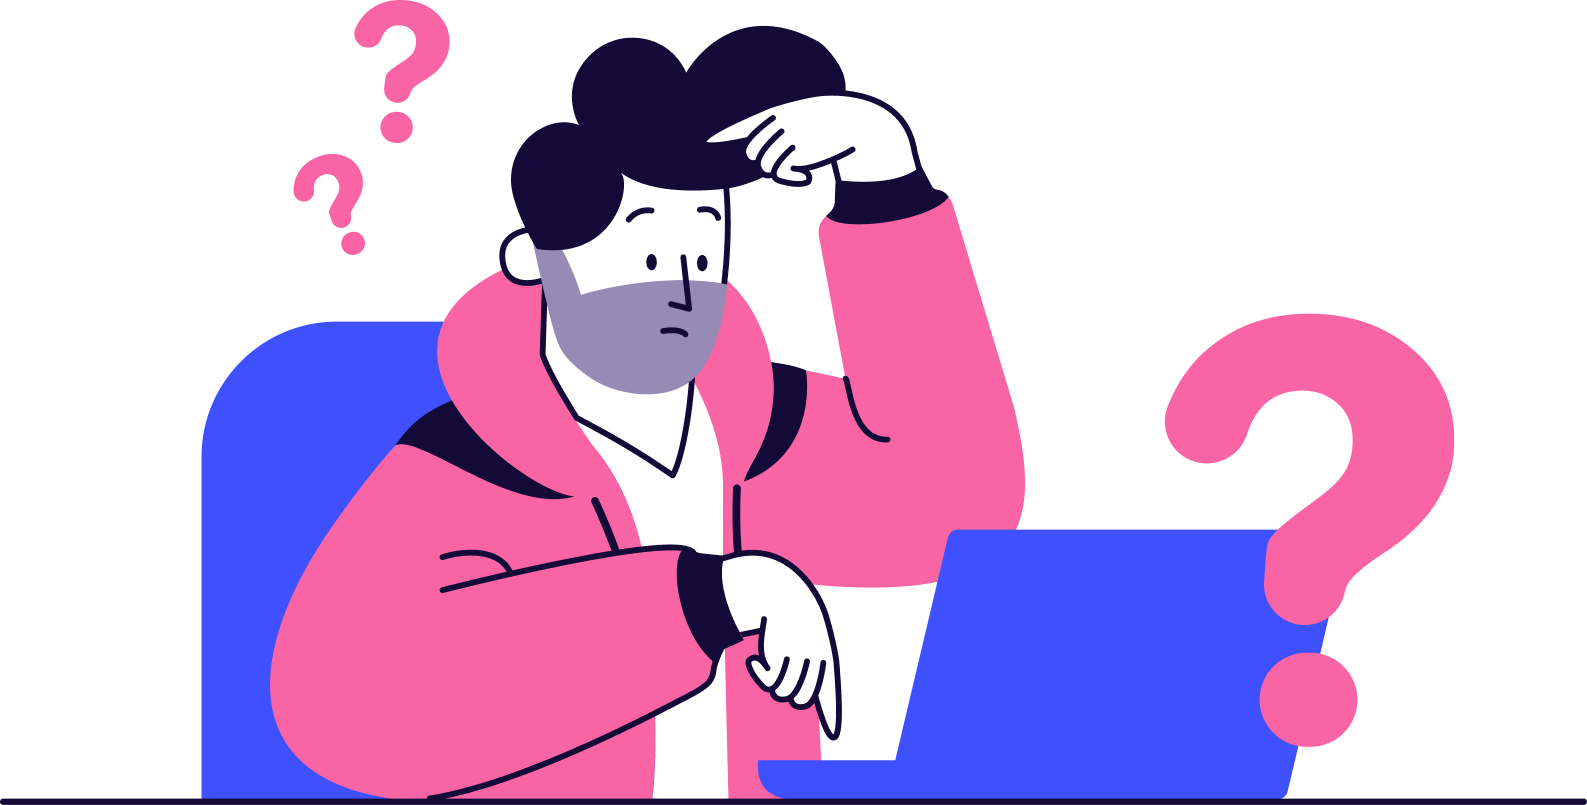 An animation of a confused women